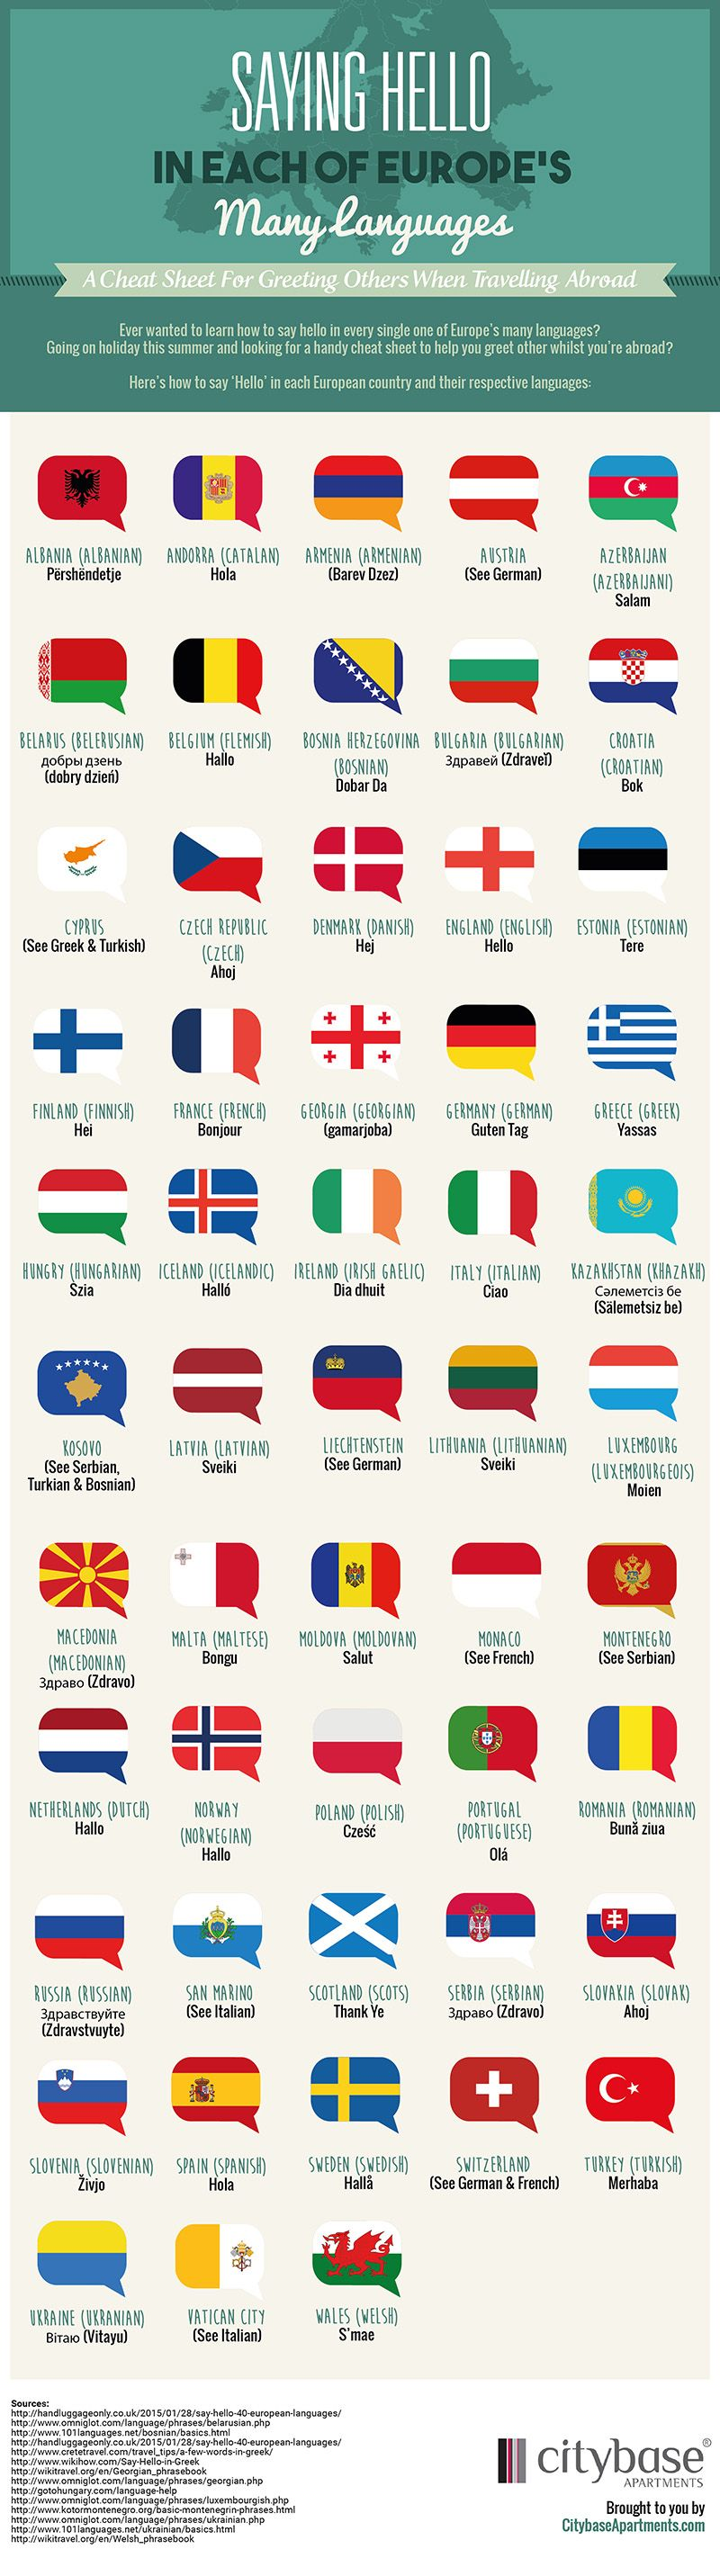 Saying Hello In Each of Europe's Many Languages